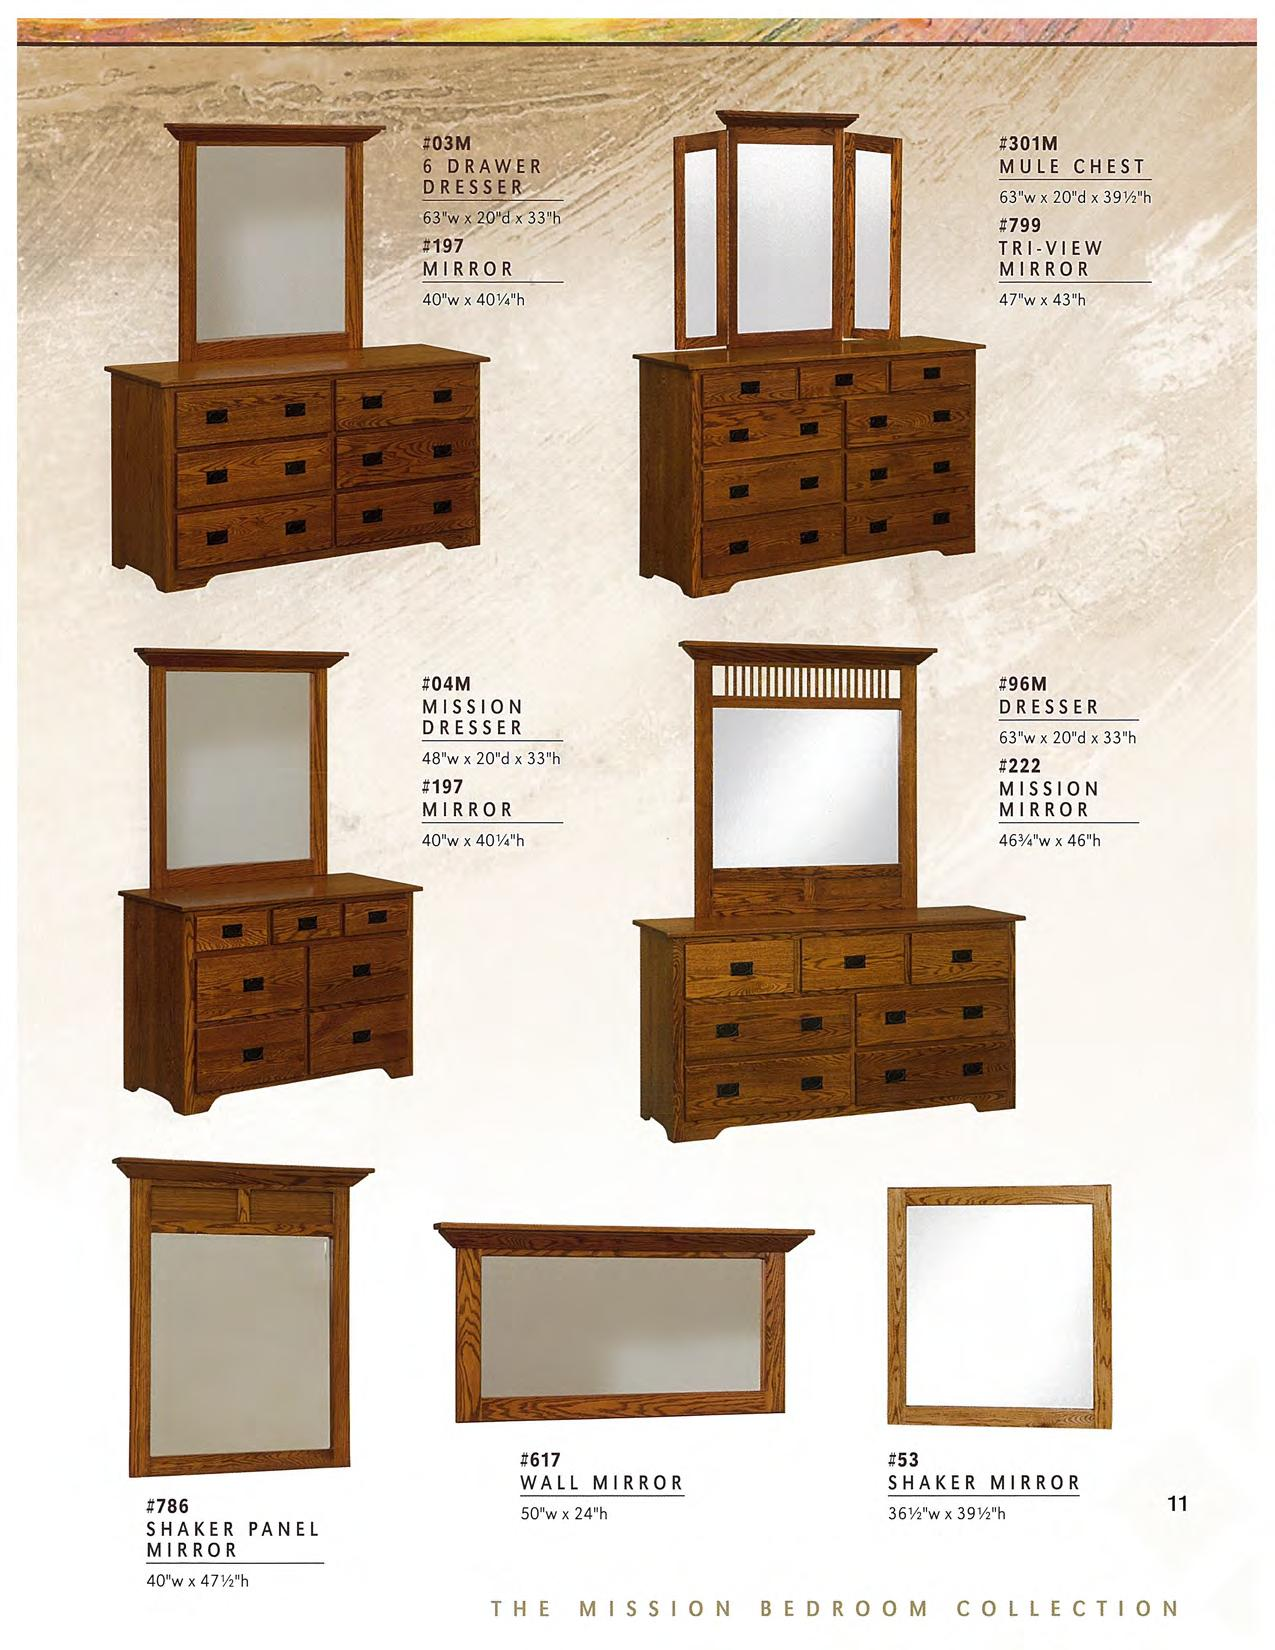 furniture-page-011